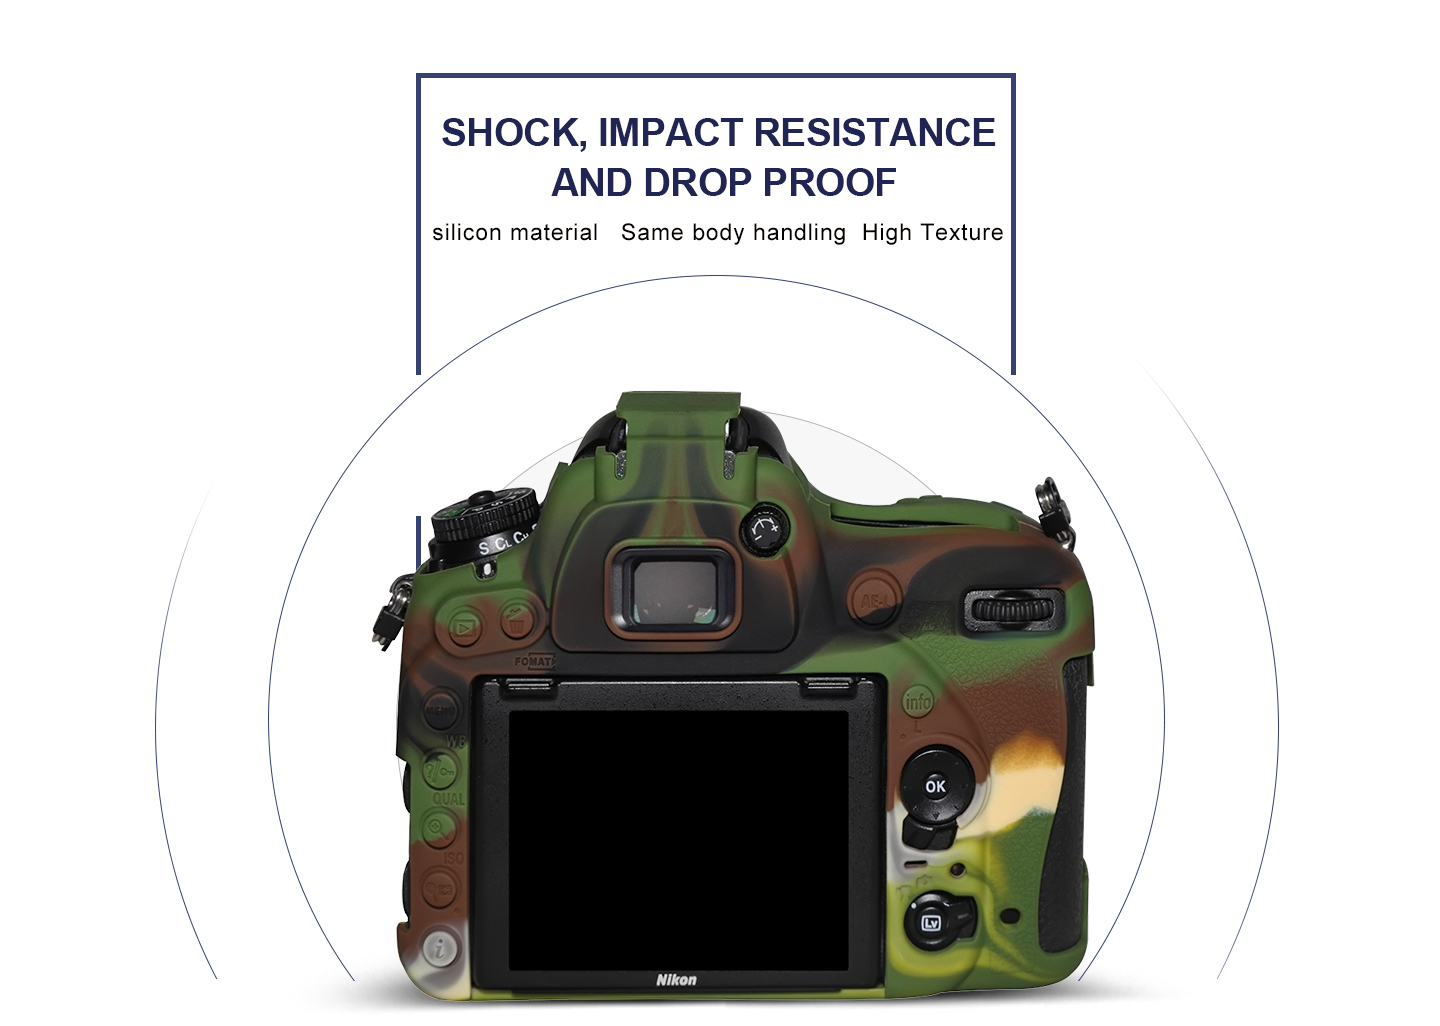 SHOCK, IMPACT RESISTANCE AND DROP PROOF